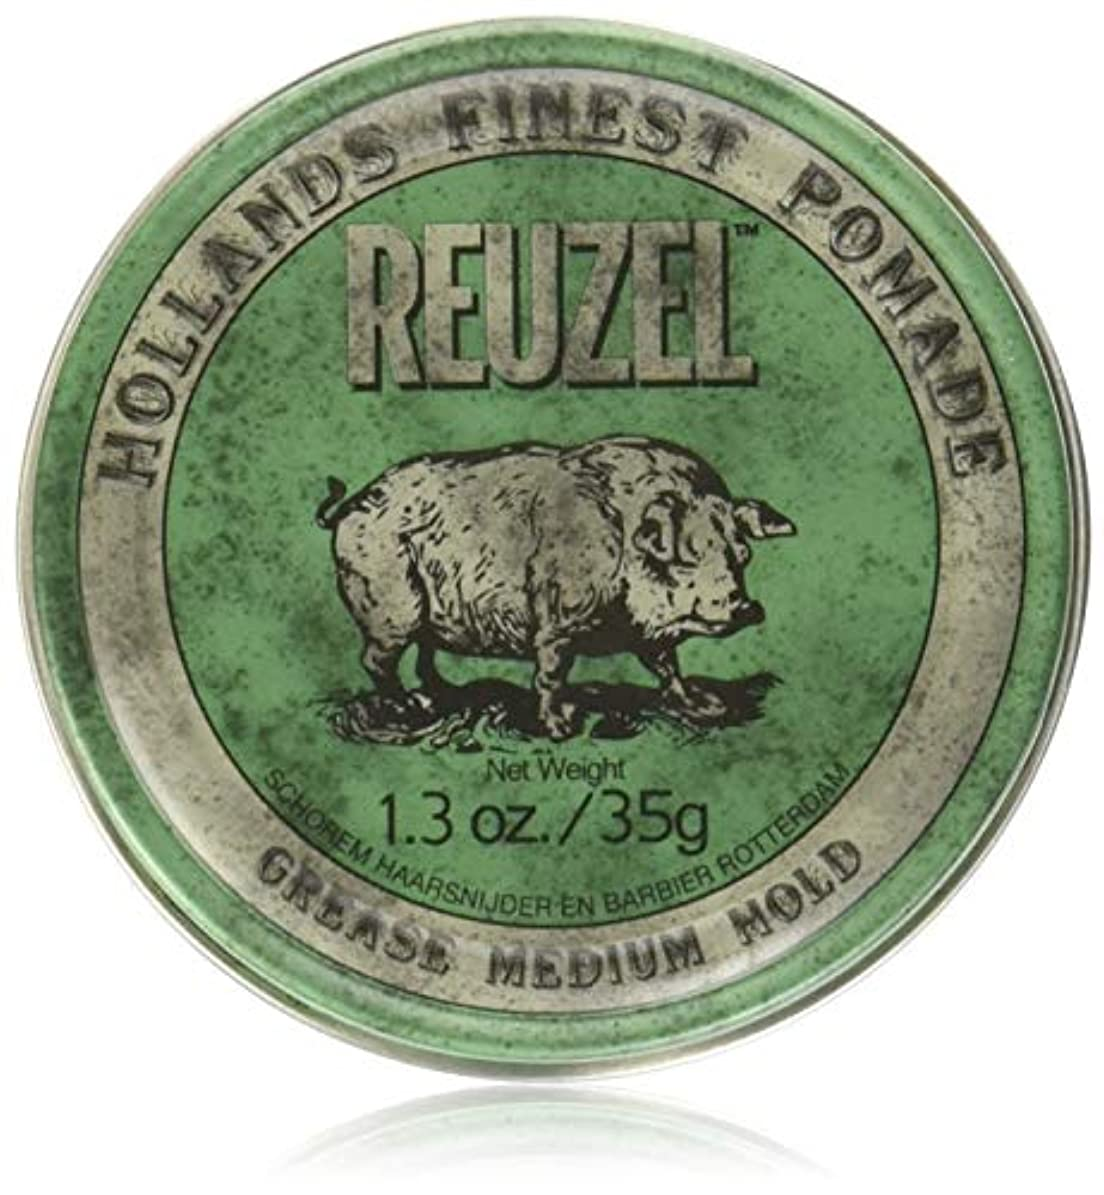 スラムレース金銭的REUZEL Grease Hold Hair Styling Pomade Piglet Wax/Gel, Medium, Green, 1.3 oz, 35g by REUZEL